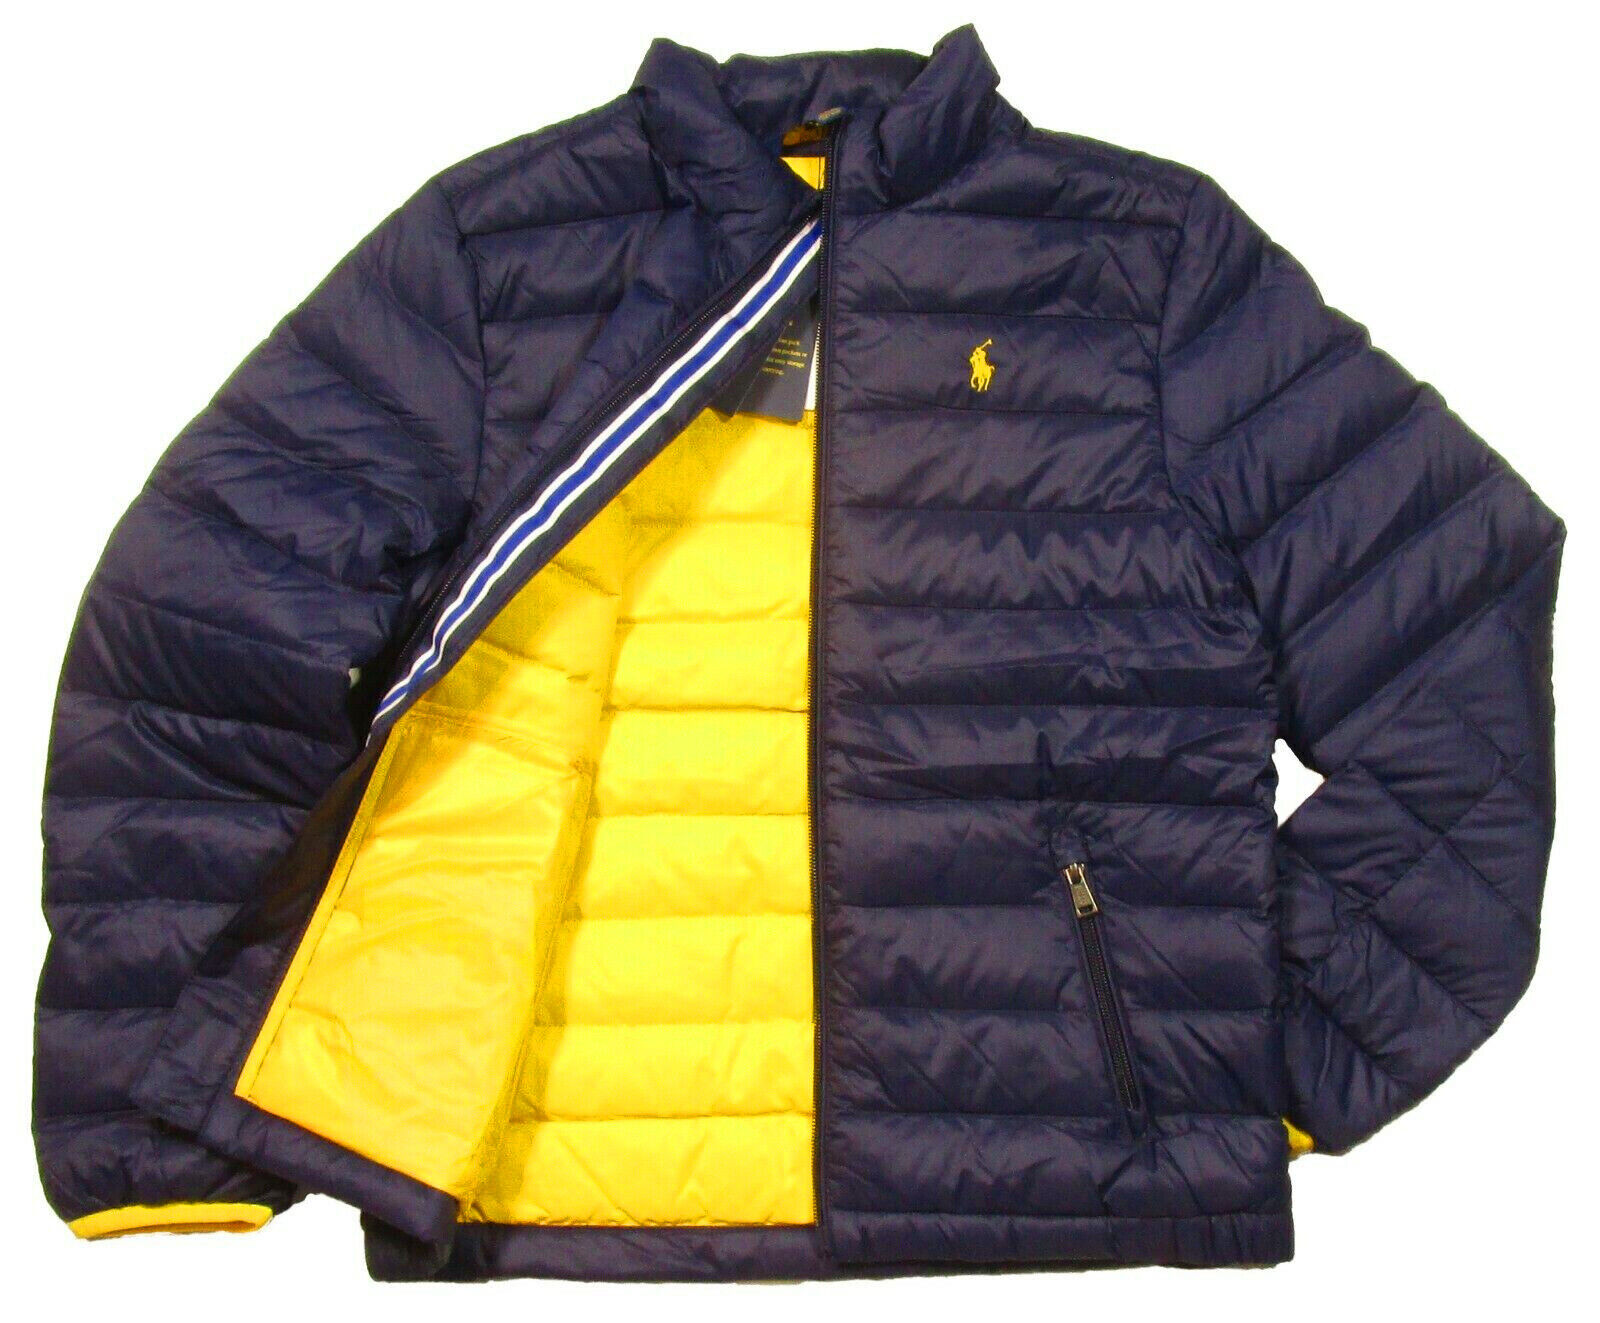 Polo RALPH LAUREN Boys Jacket Quilted Coat Size 2 2T 3 3T Navy Blue